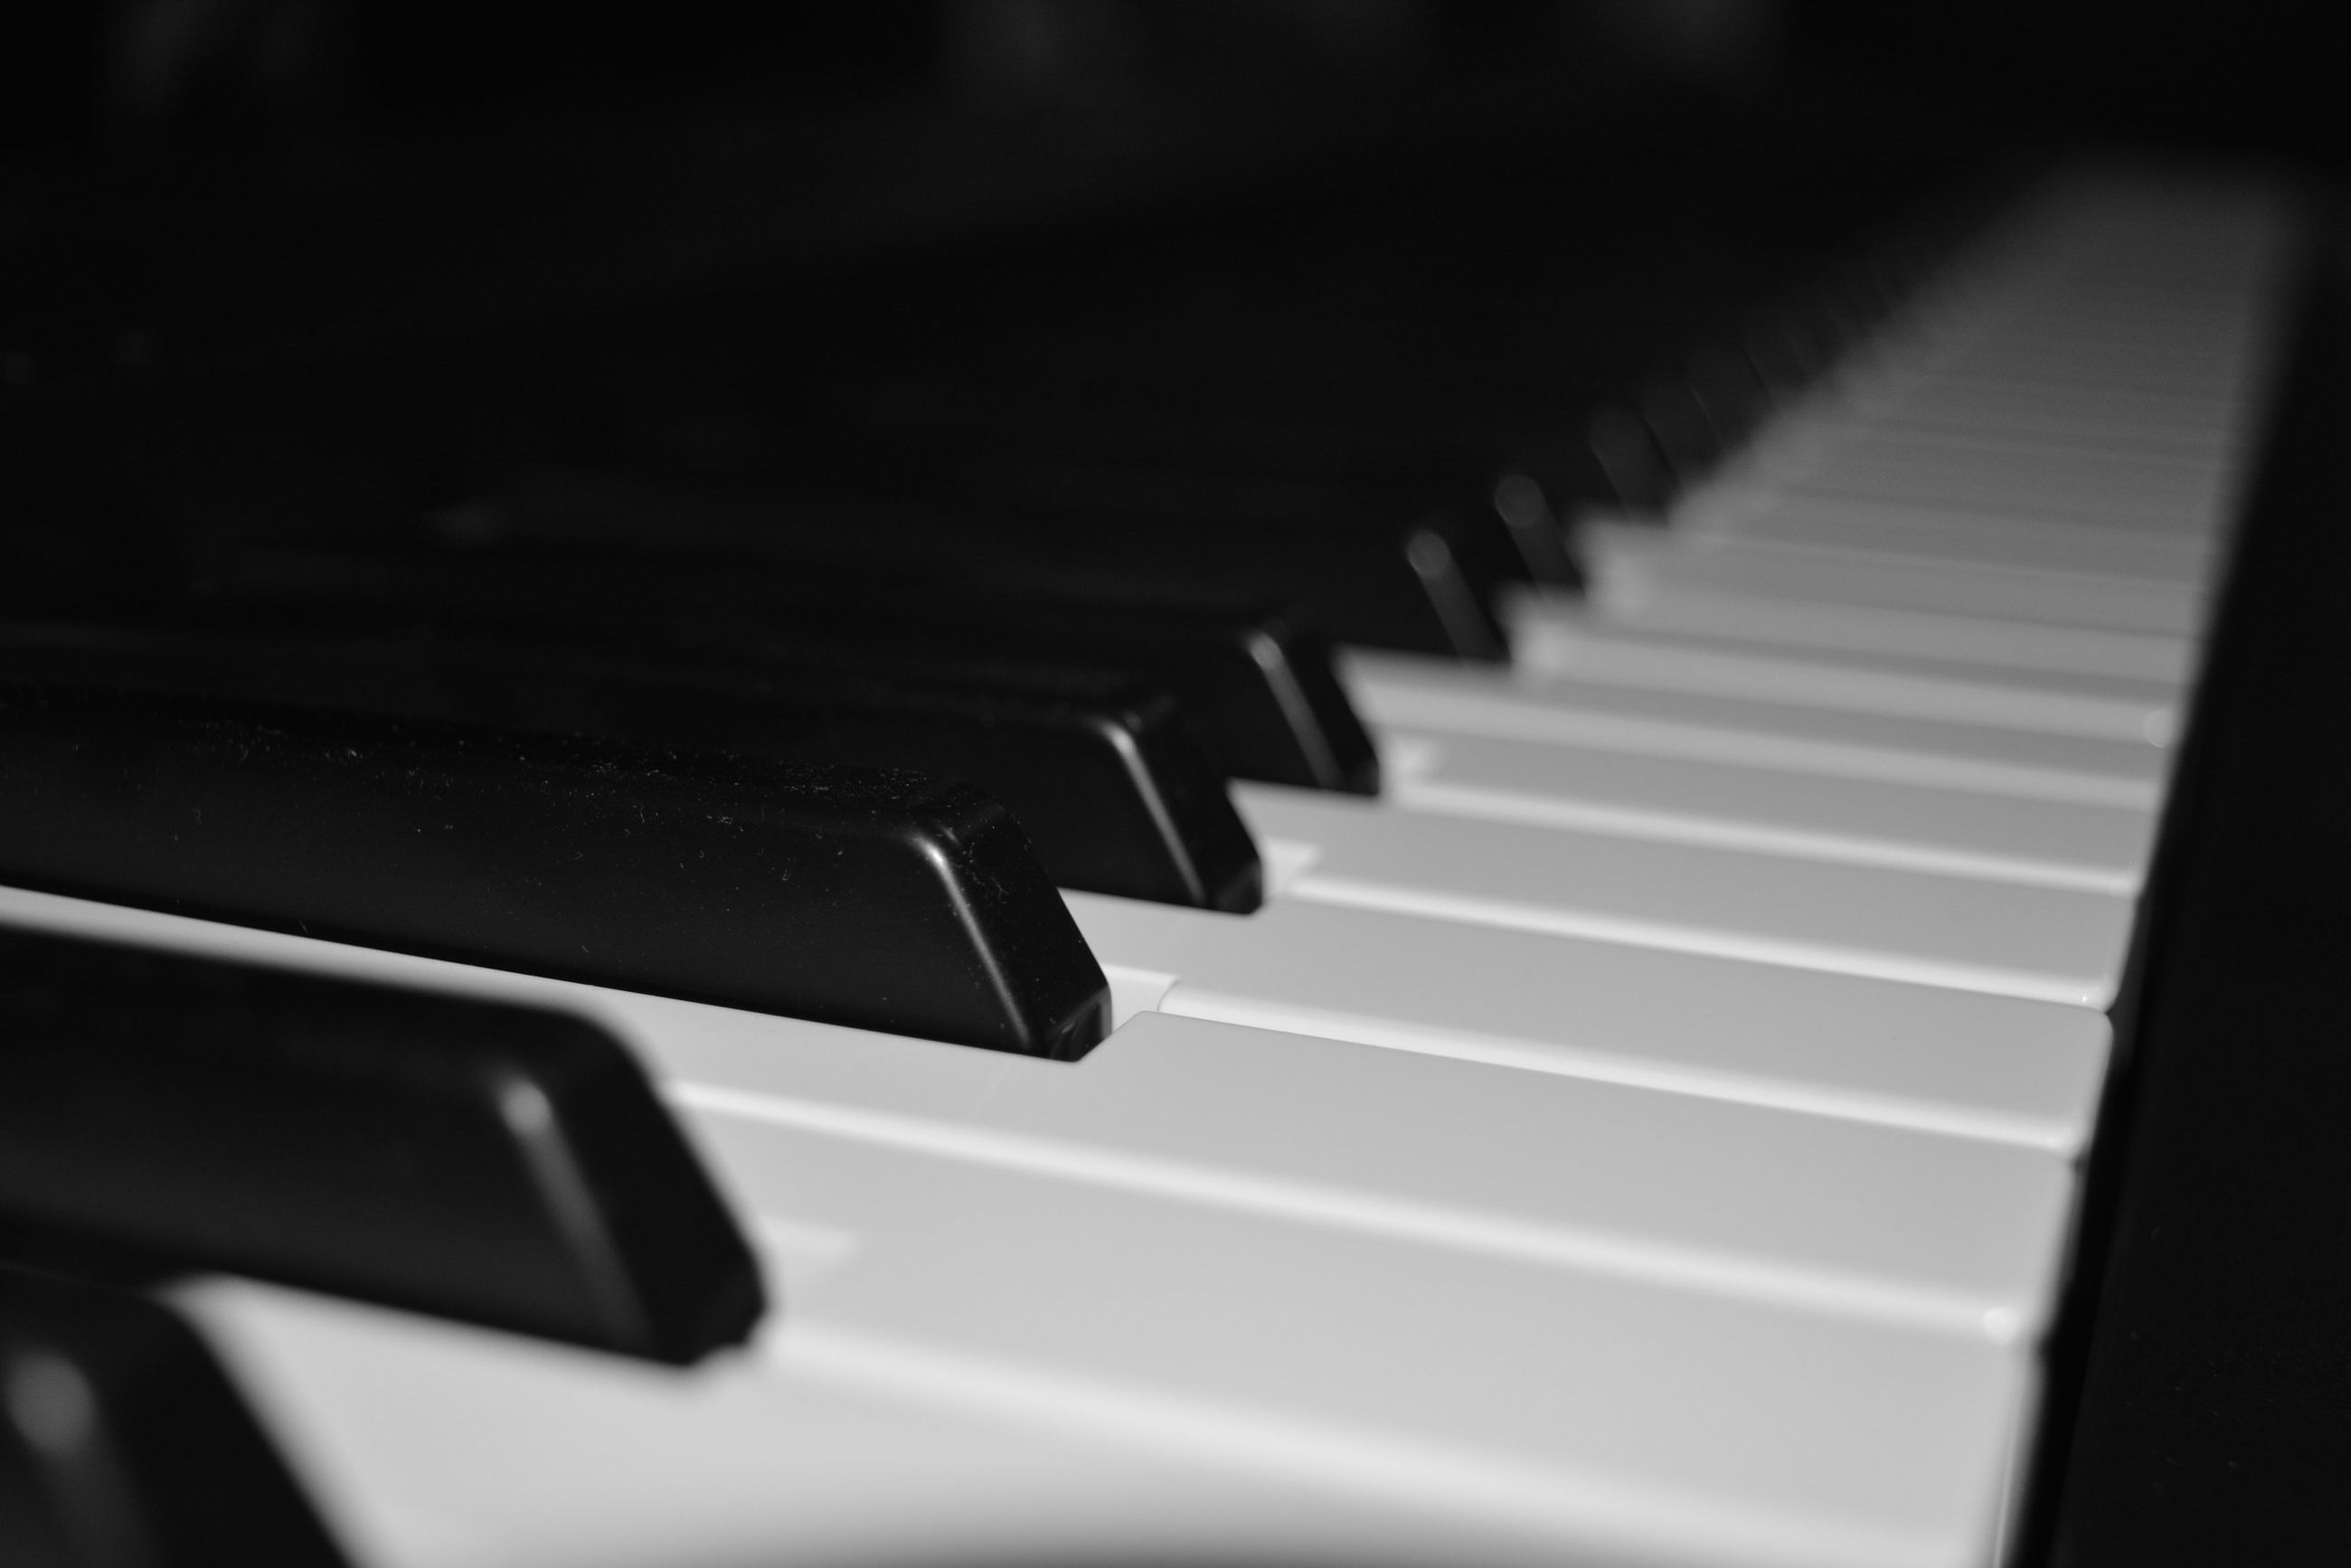 music, musical instrument, piano, piano key, arts culture and entertainment, close-up, black color, no people, indoors, keyboard, day